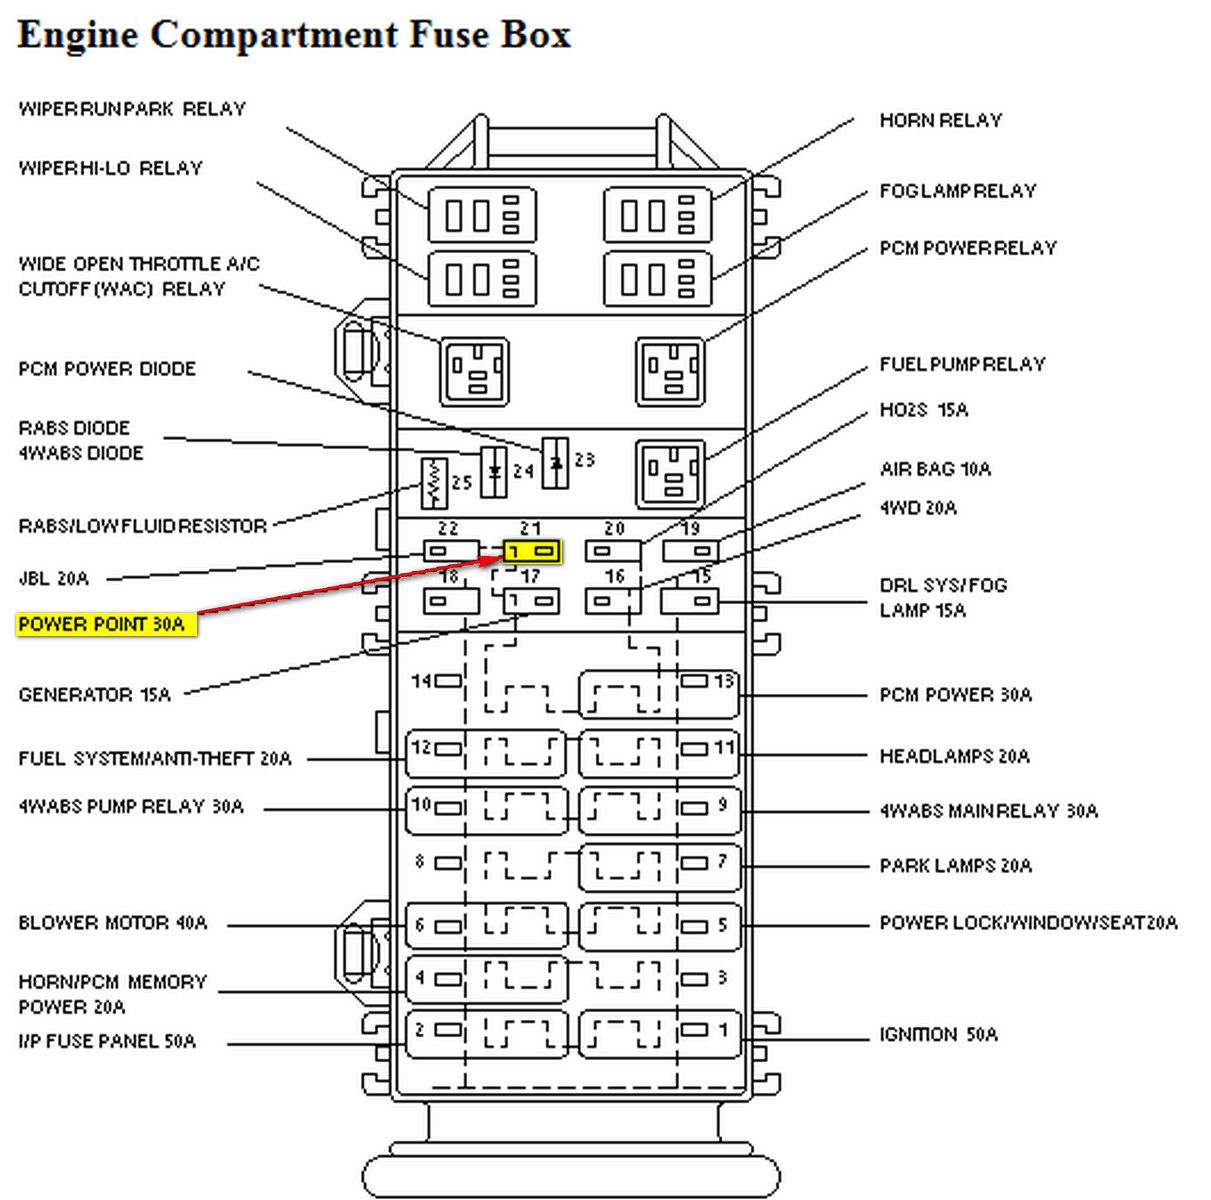 medium resolution of 96 ford ranger fuse diagram wiring diagram sheet 2002 ford ranger fuse diagram 1997 ford ranger